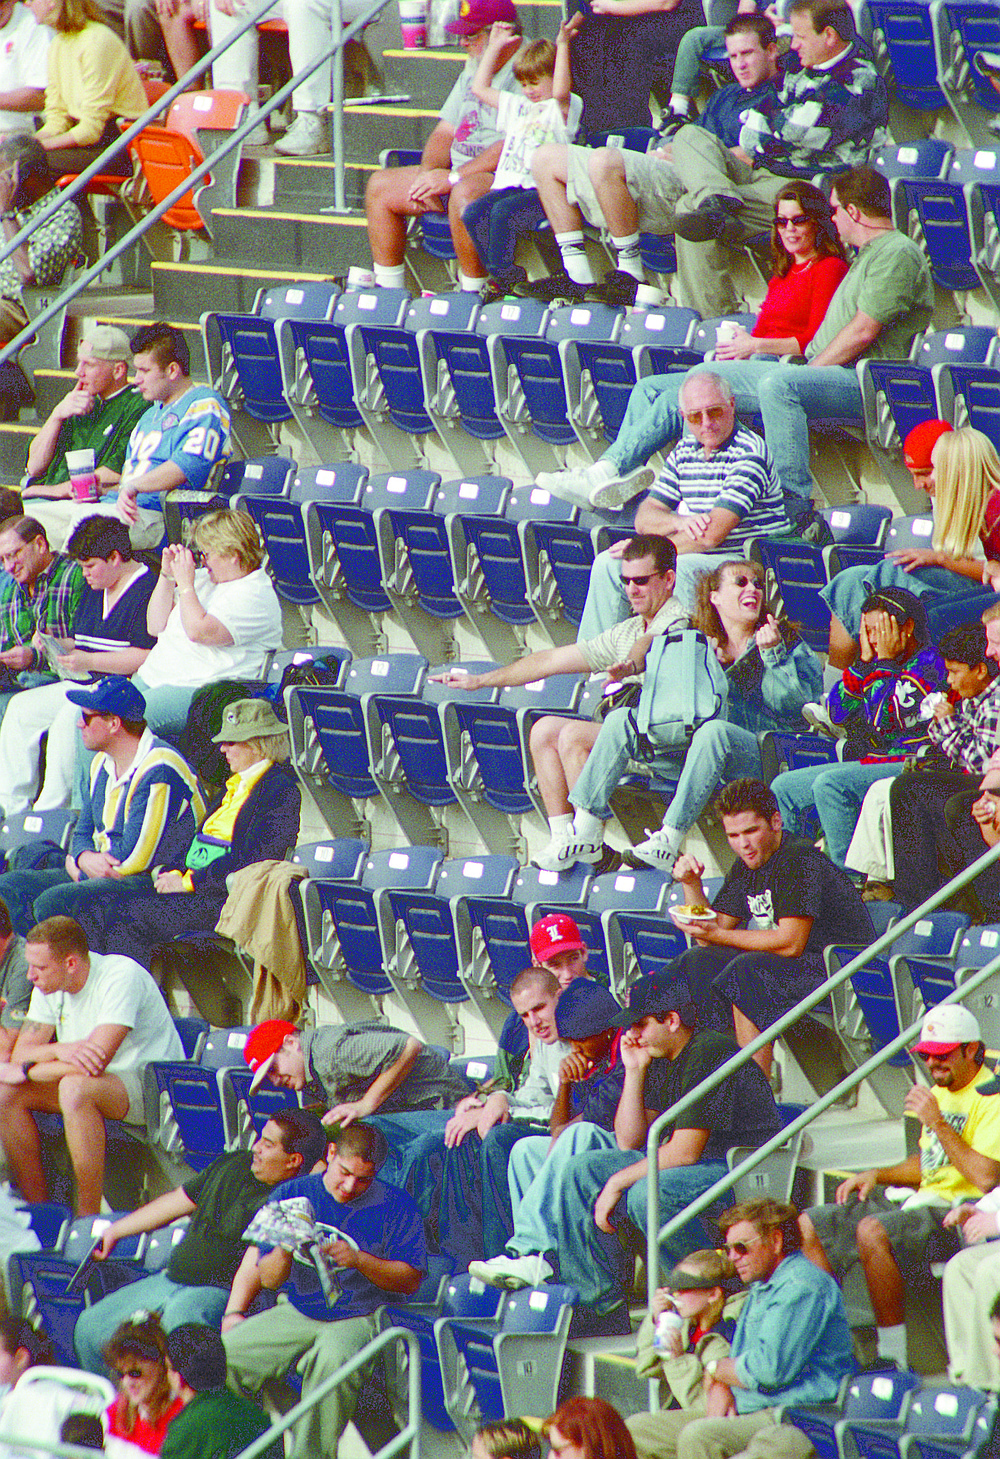 Fans at a Chargers-Browns game Dec. 5, 1999